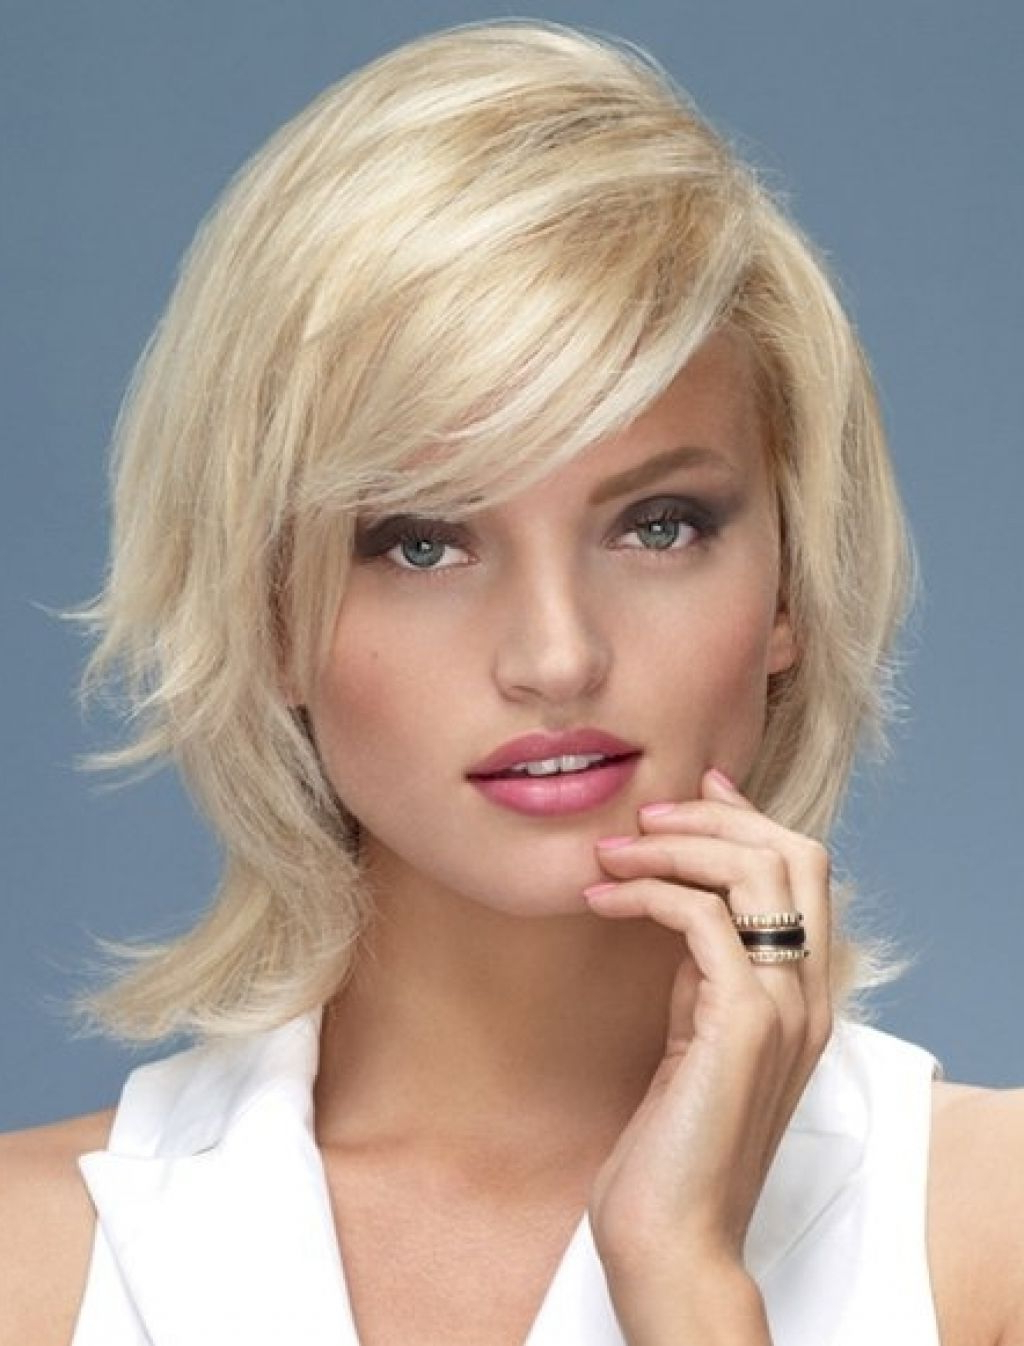 Medium Short Hairstyles For Round Faces – Hairstyle For Women & Man Pertaining To Short To Medium Hairstyles For Round Faces (View 14 of 25)